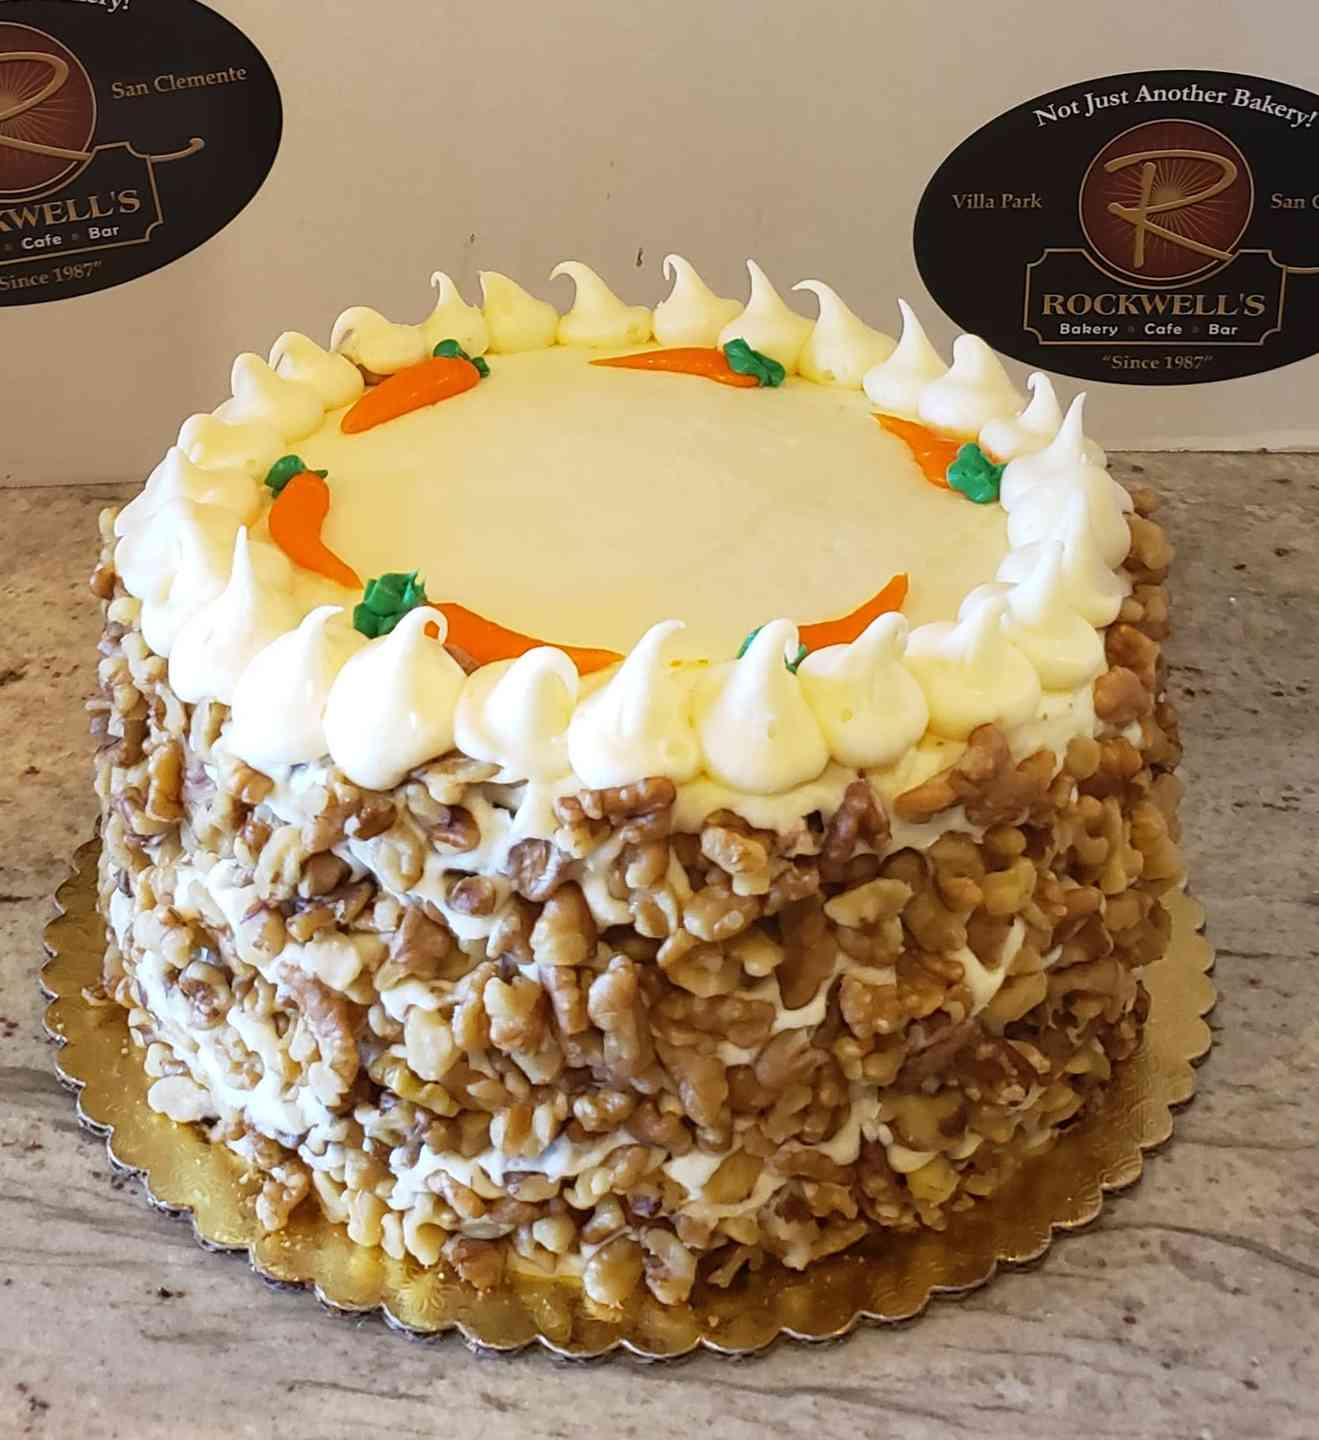 Rockwell's famous Carrot Cake